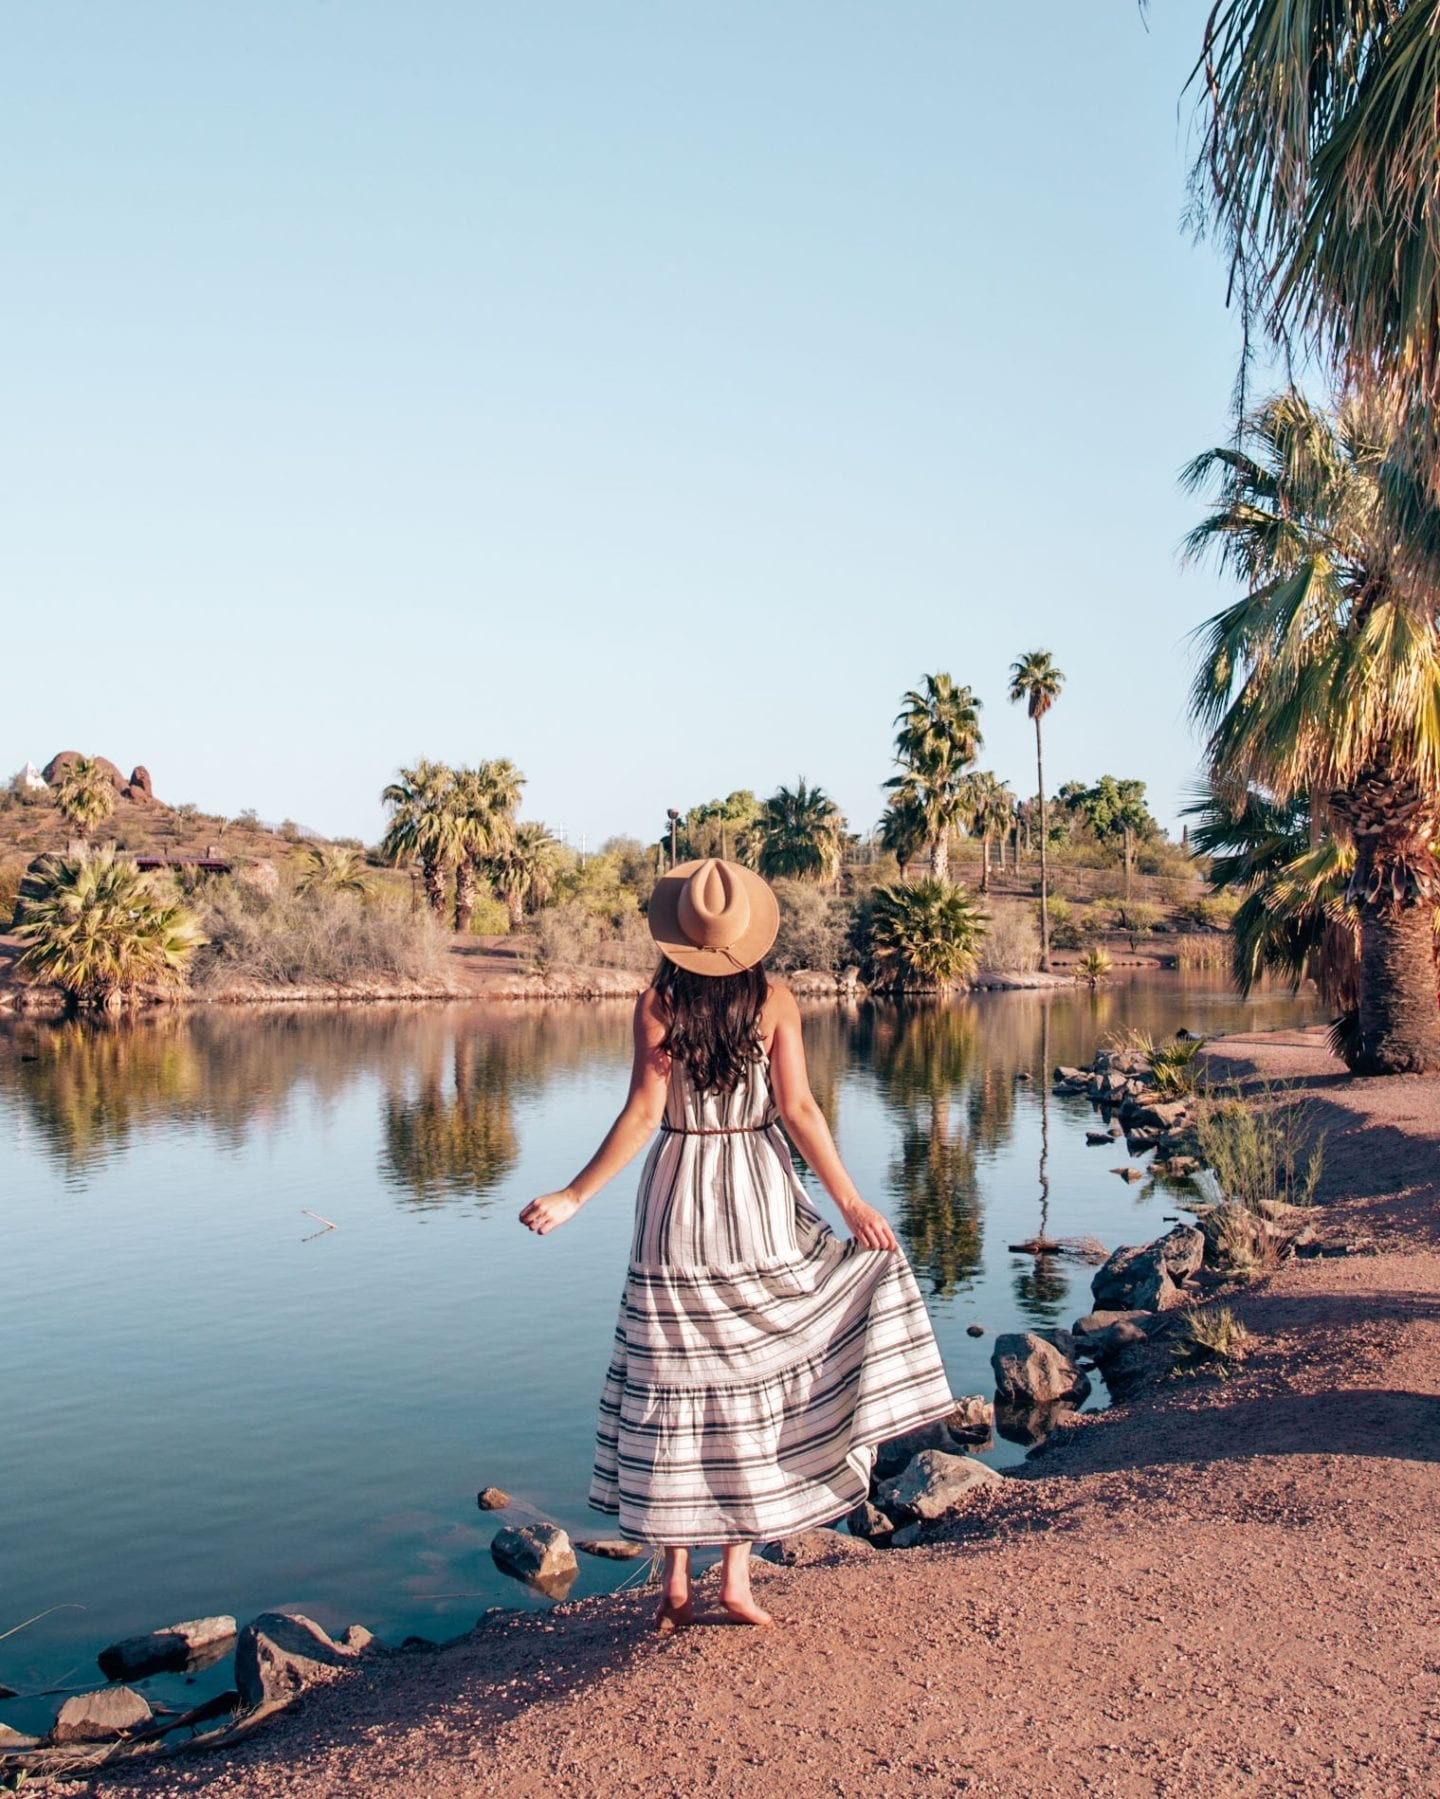 Girl at papago park in Scottsdale, Arizona